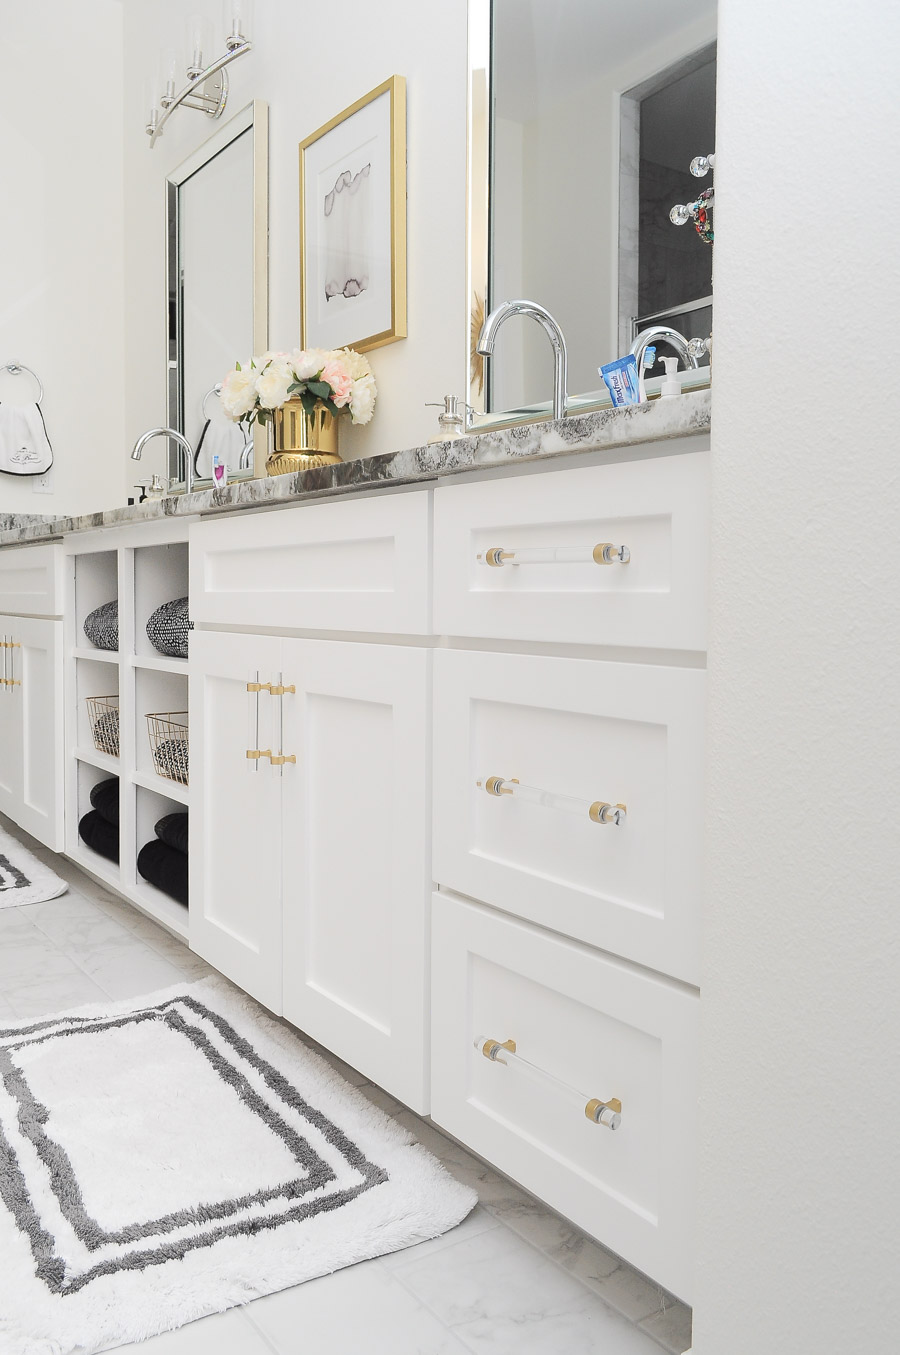 White shaker cabinet vanity with open shelving for towel storage. This master bathroom suite is gorgeous- I am loving all the gold, chrome and glam decor.